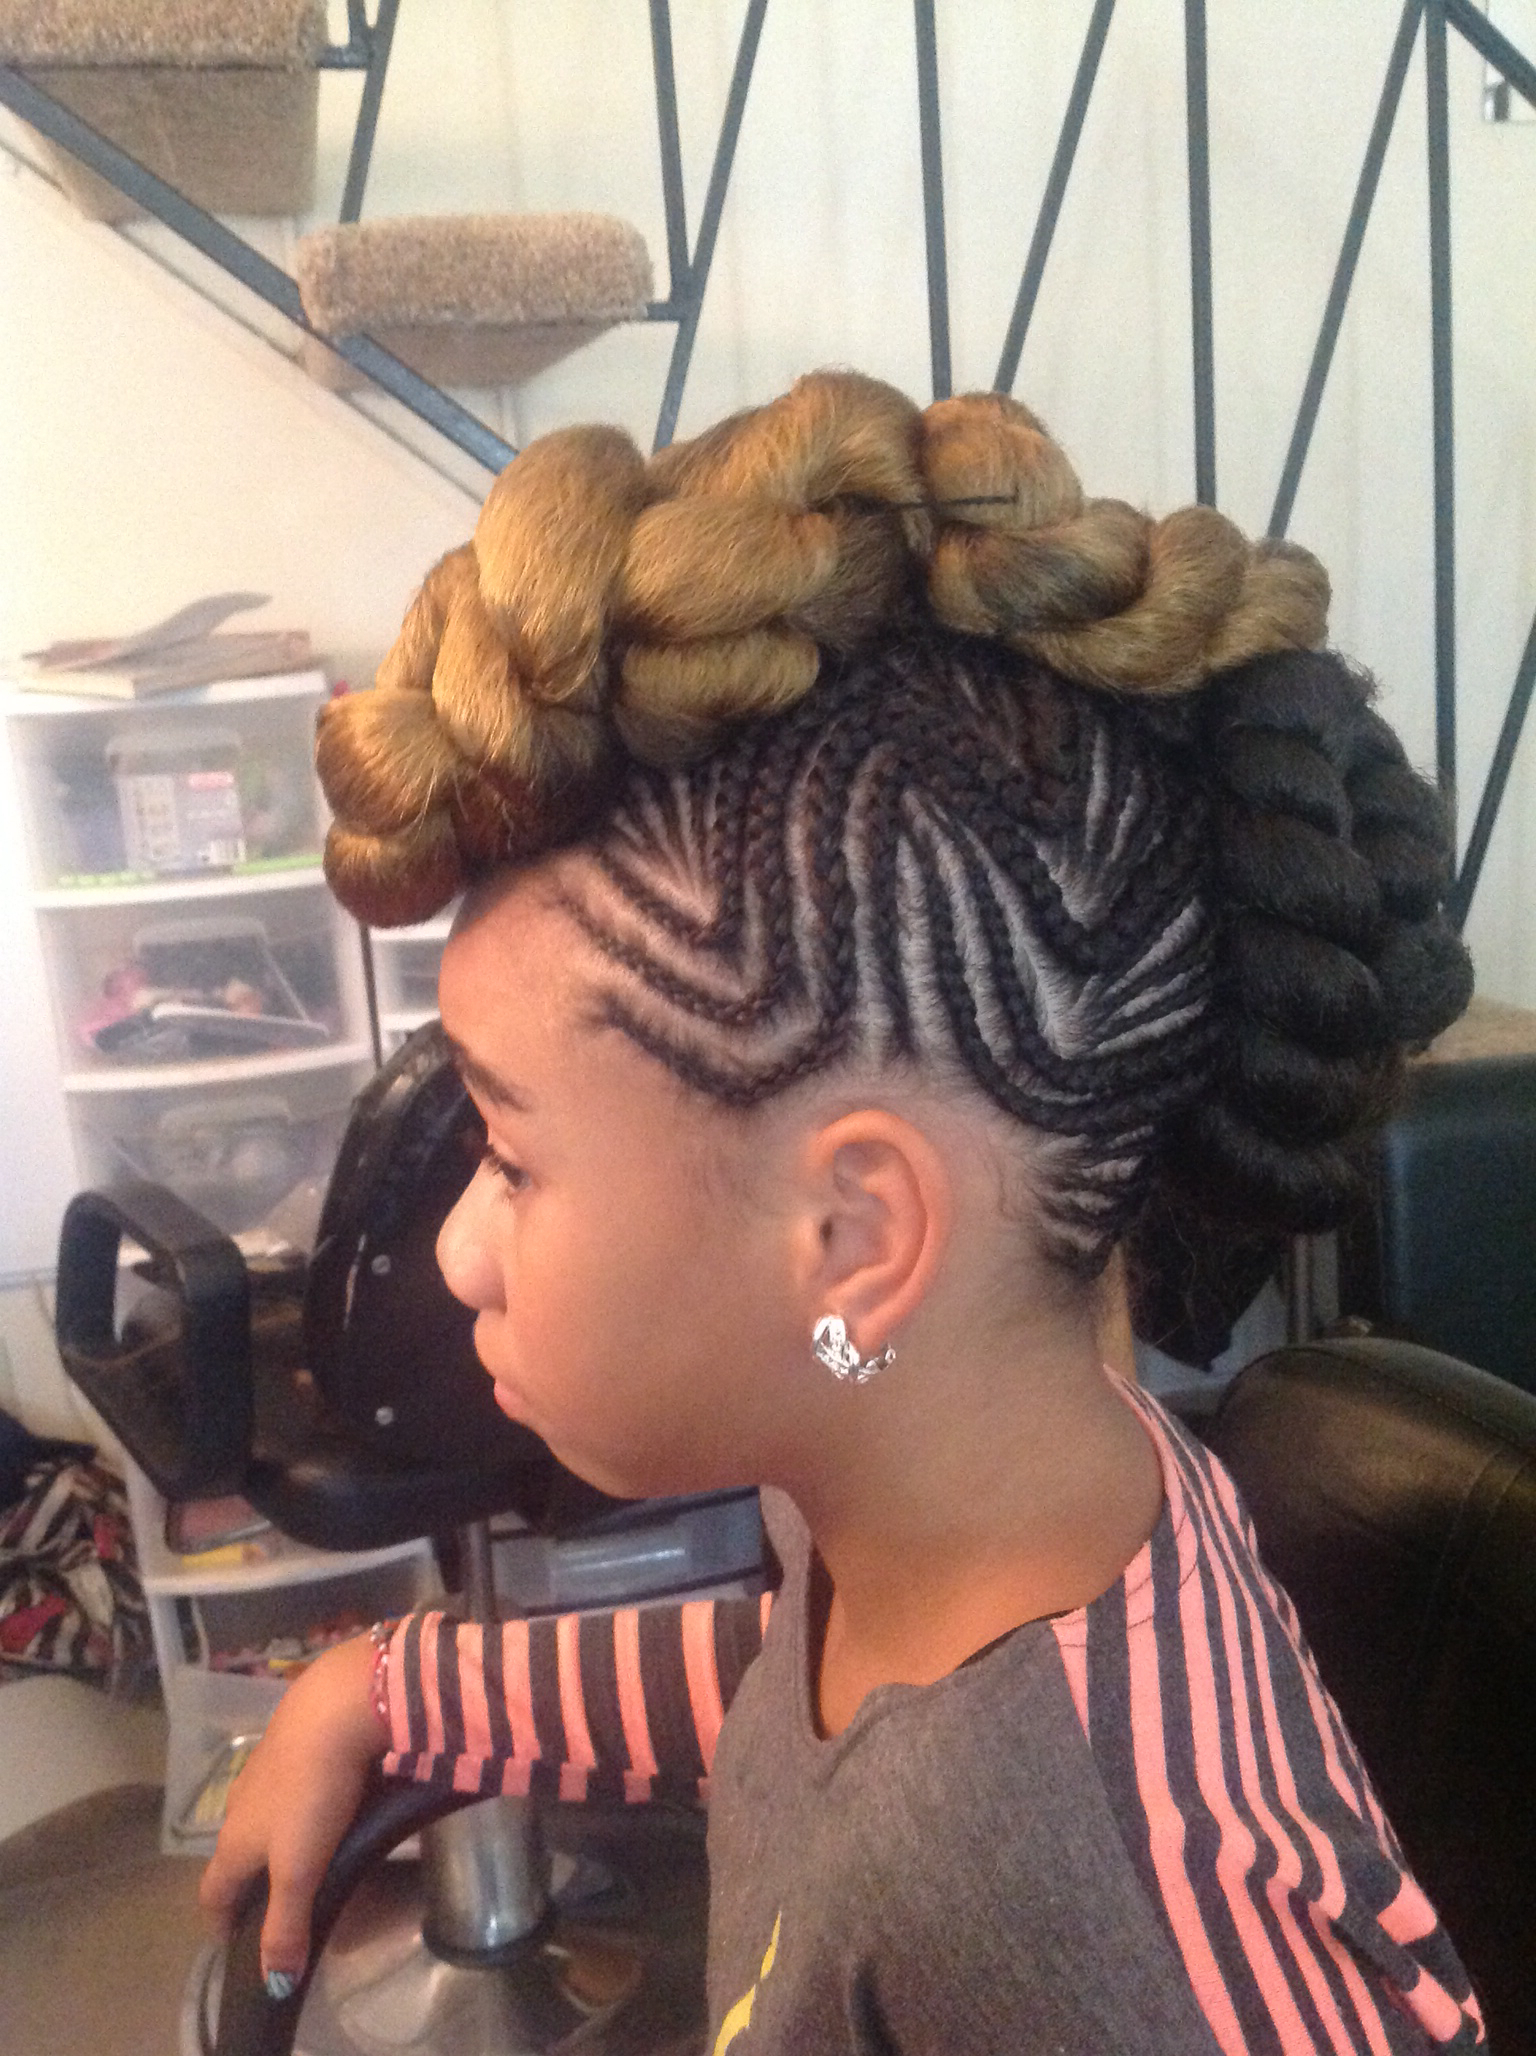 15 Foremost Braided Mohawk Hairstyles – Mohawk With Braids Intended For Current Elegant Curly Mohawk Updo Hairstyles (View 17 of 20)